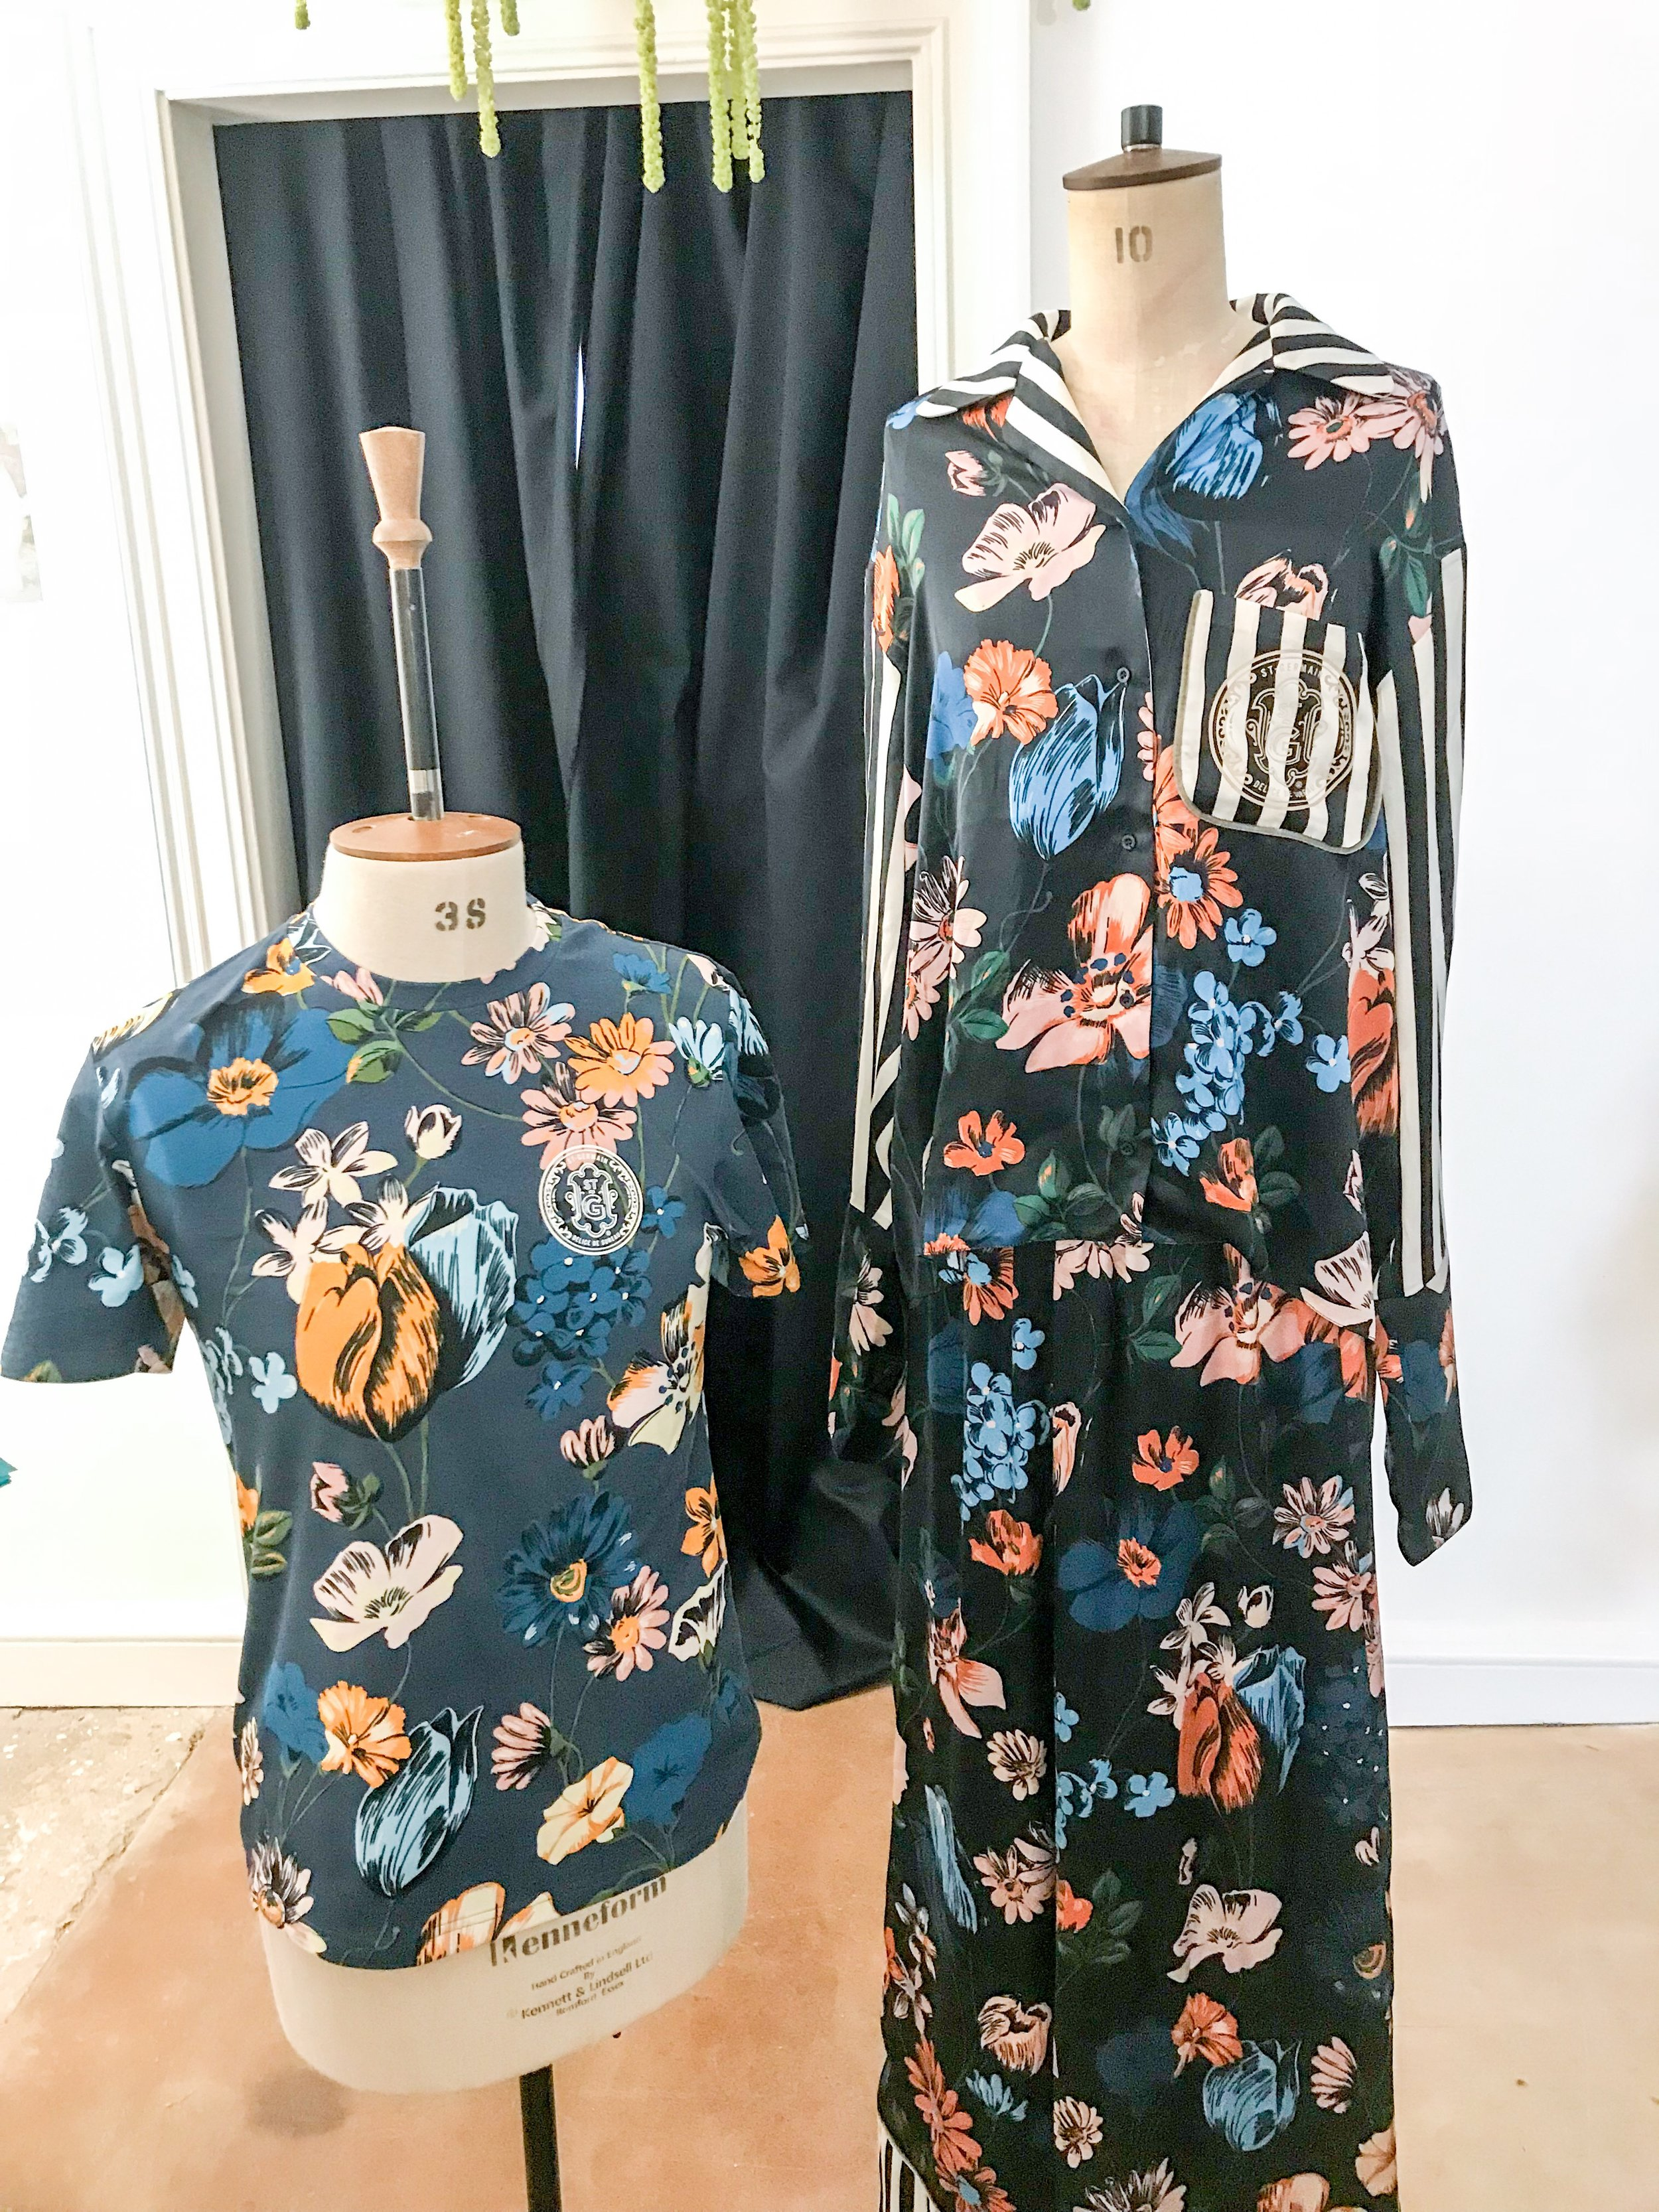 House of Holland x St-Germain PJs